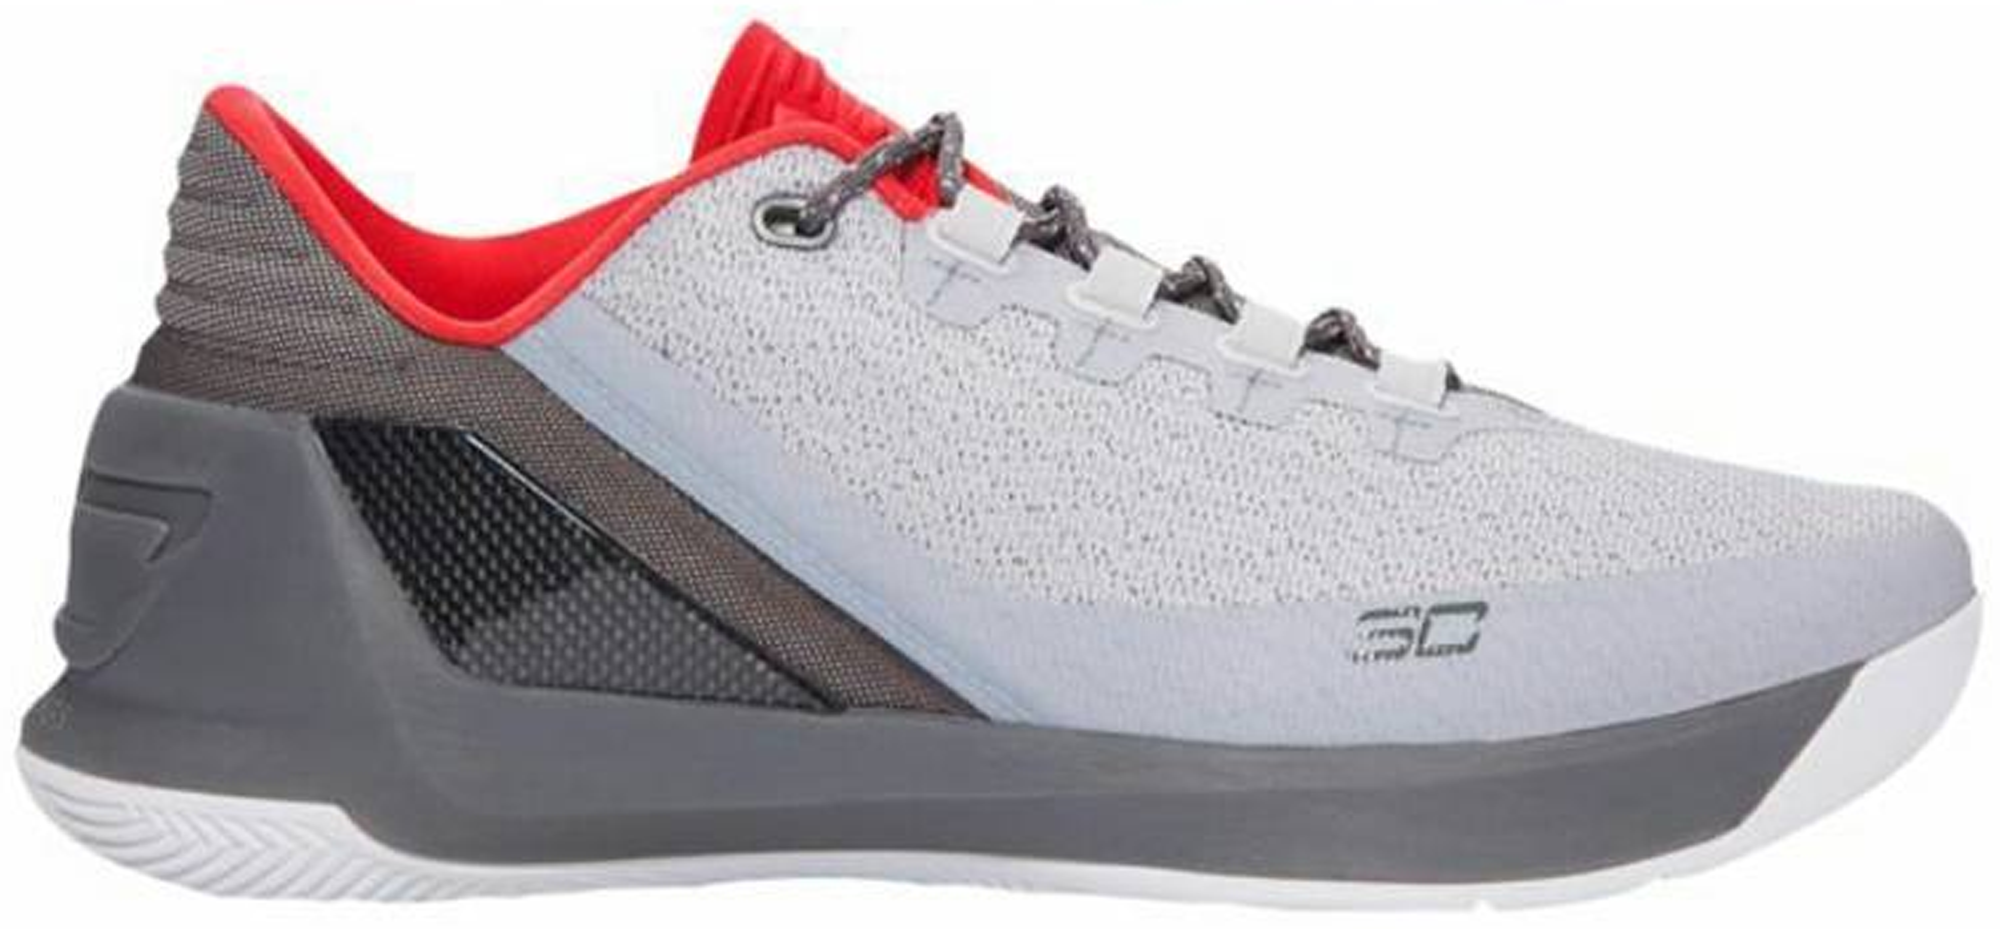 check out b4154 dc7d4 Under Armour Curry 3 Low 122 - StockX News